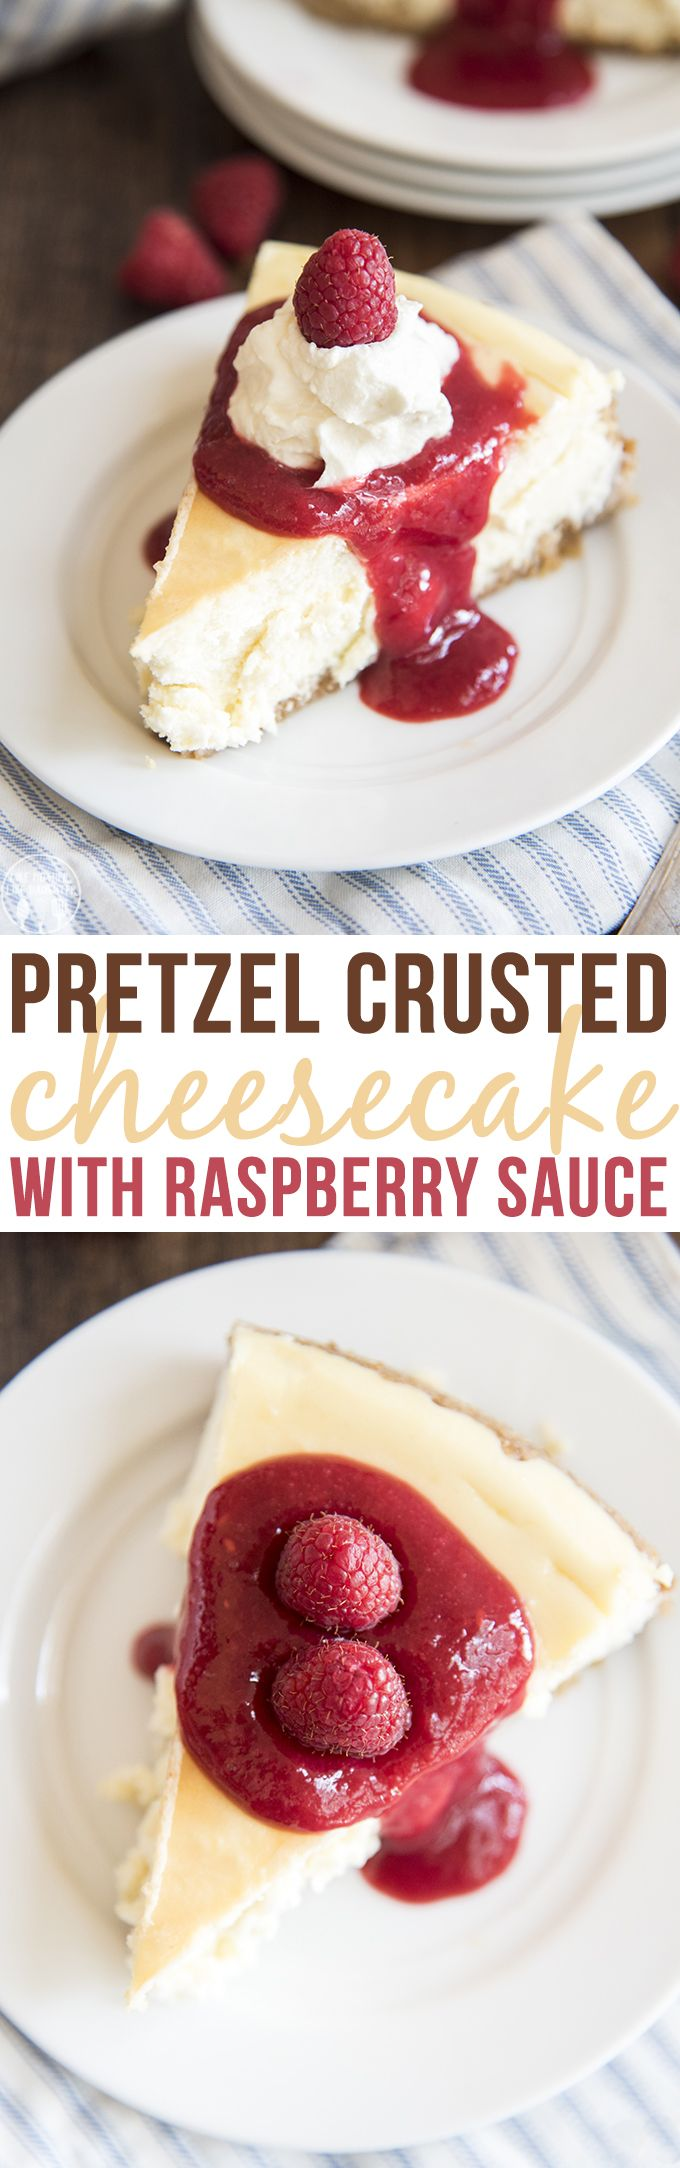 Pretzel Crusted Cheesecake with Raspberry Sauce - This cheesecake is a rich and creamy cheesecake topped with the best raspberry sauce! This is to die for!